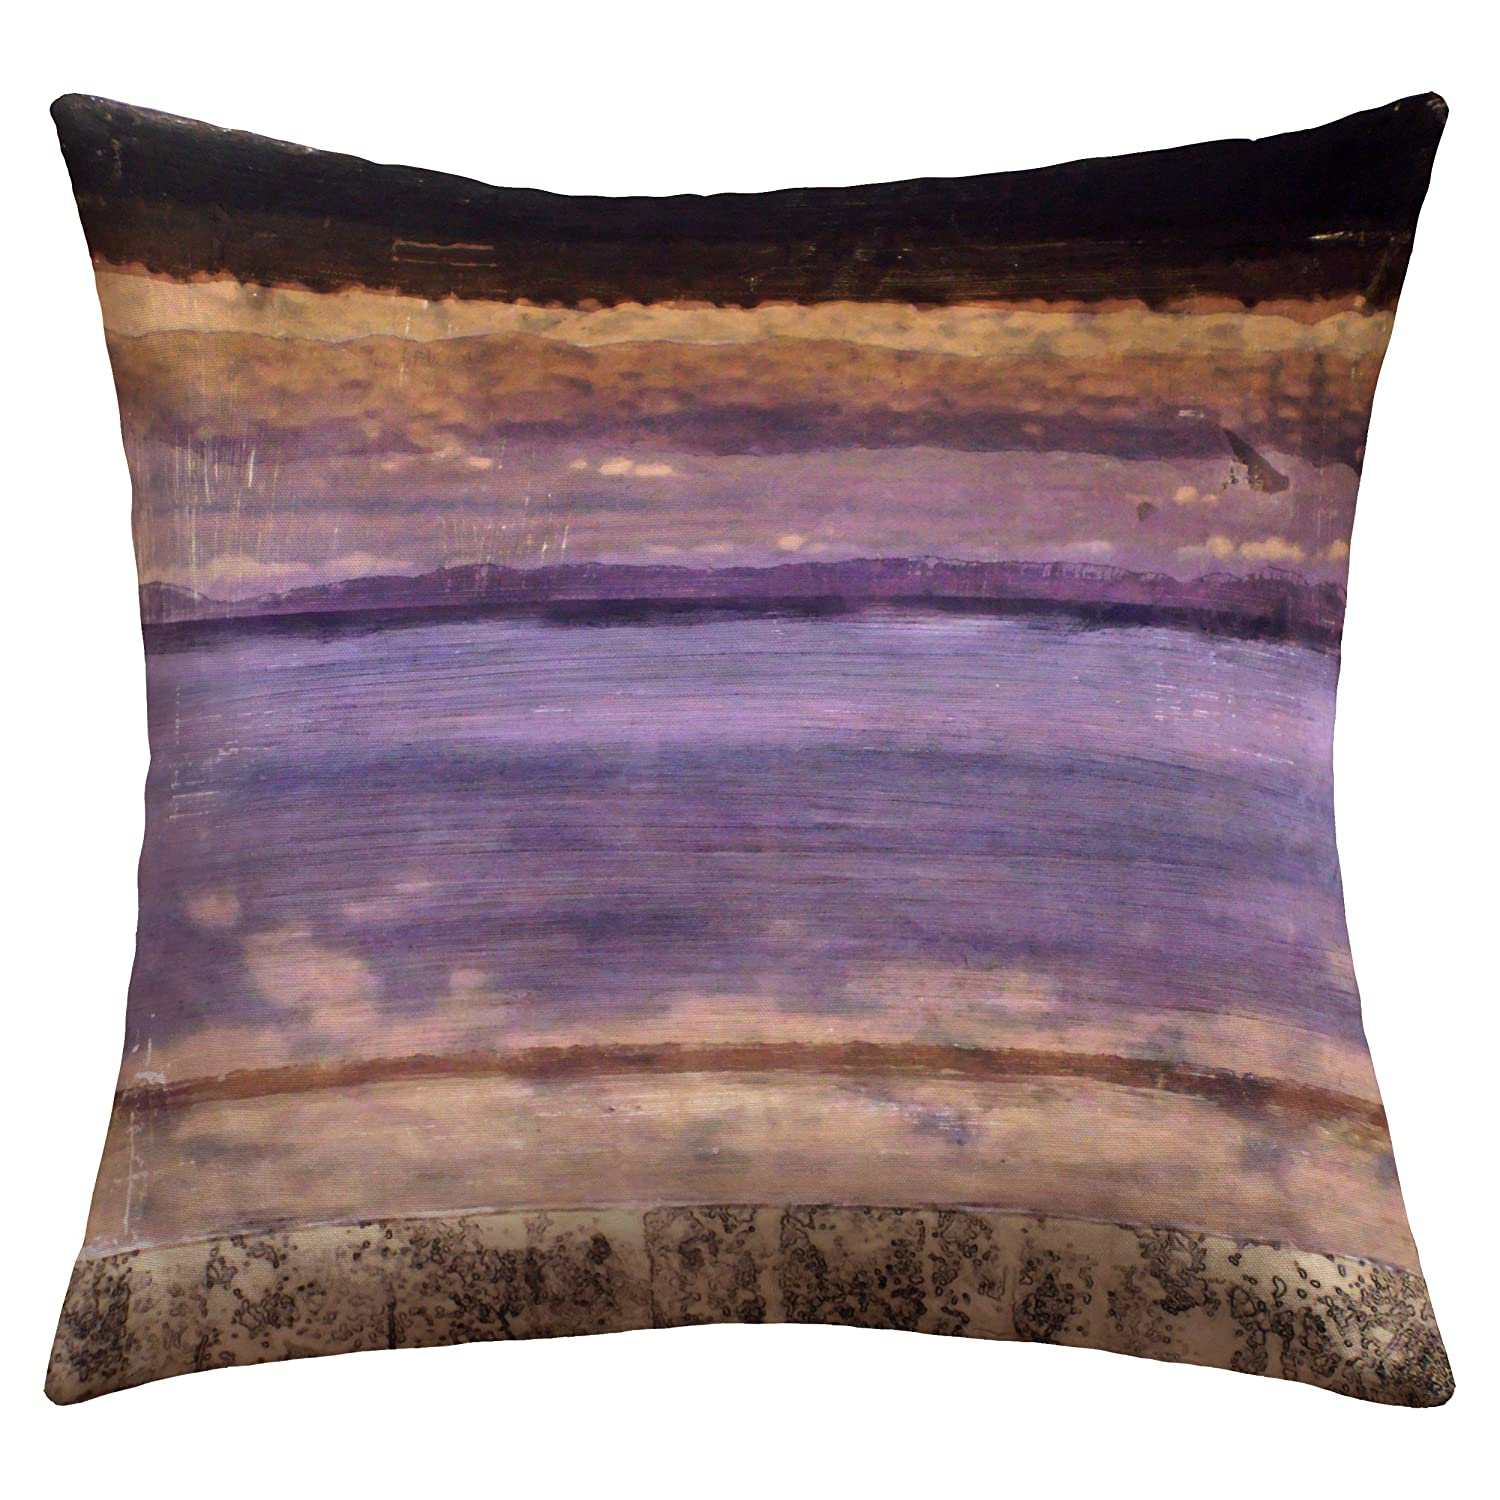 ArtVerse Katelyn Smith 26 x 26 Faux Suede Double Sided Print with Concealed Zipper /& Insert Maine Outline Pillow